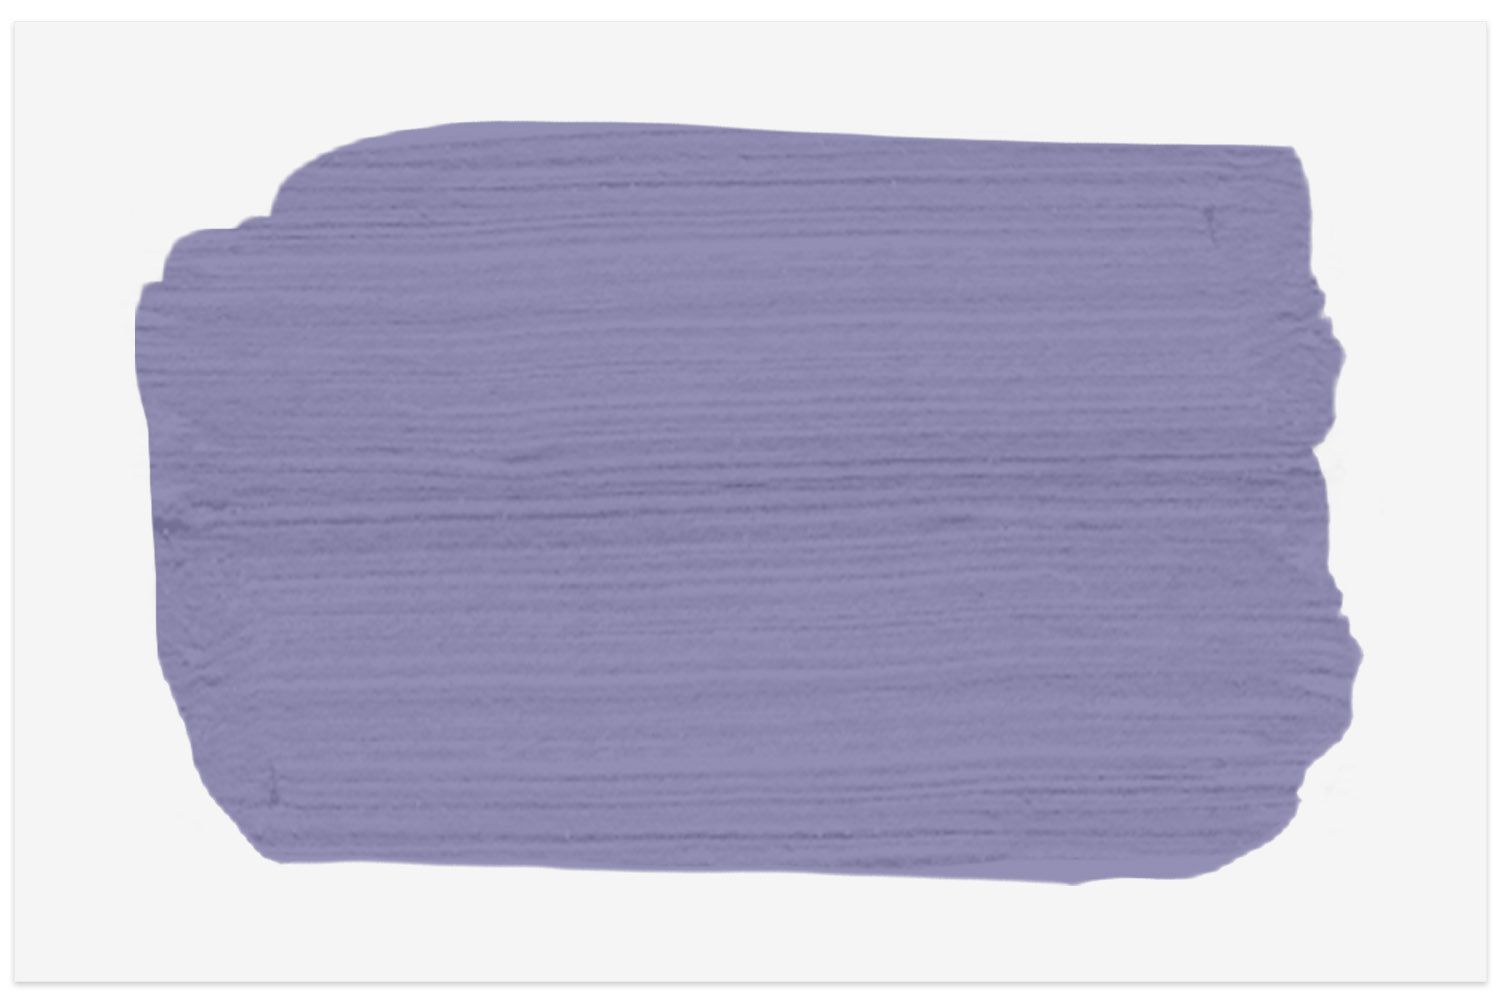 Olympic Paints French Violet paint swatch for lavender-inspired